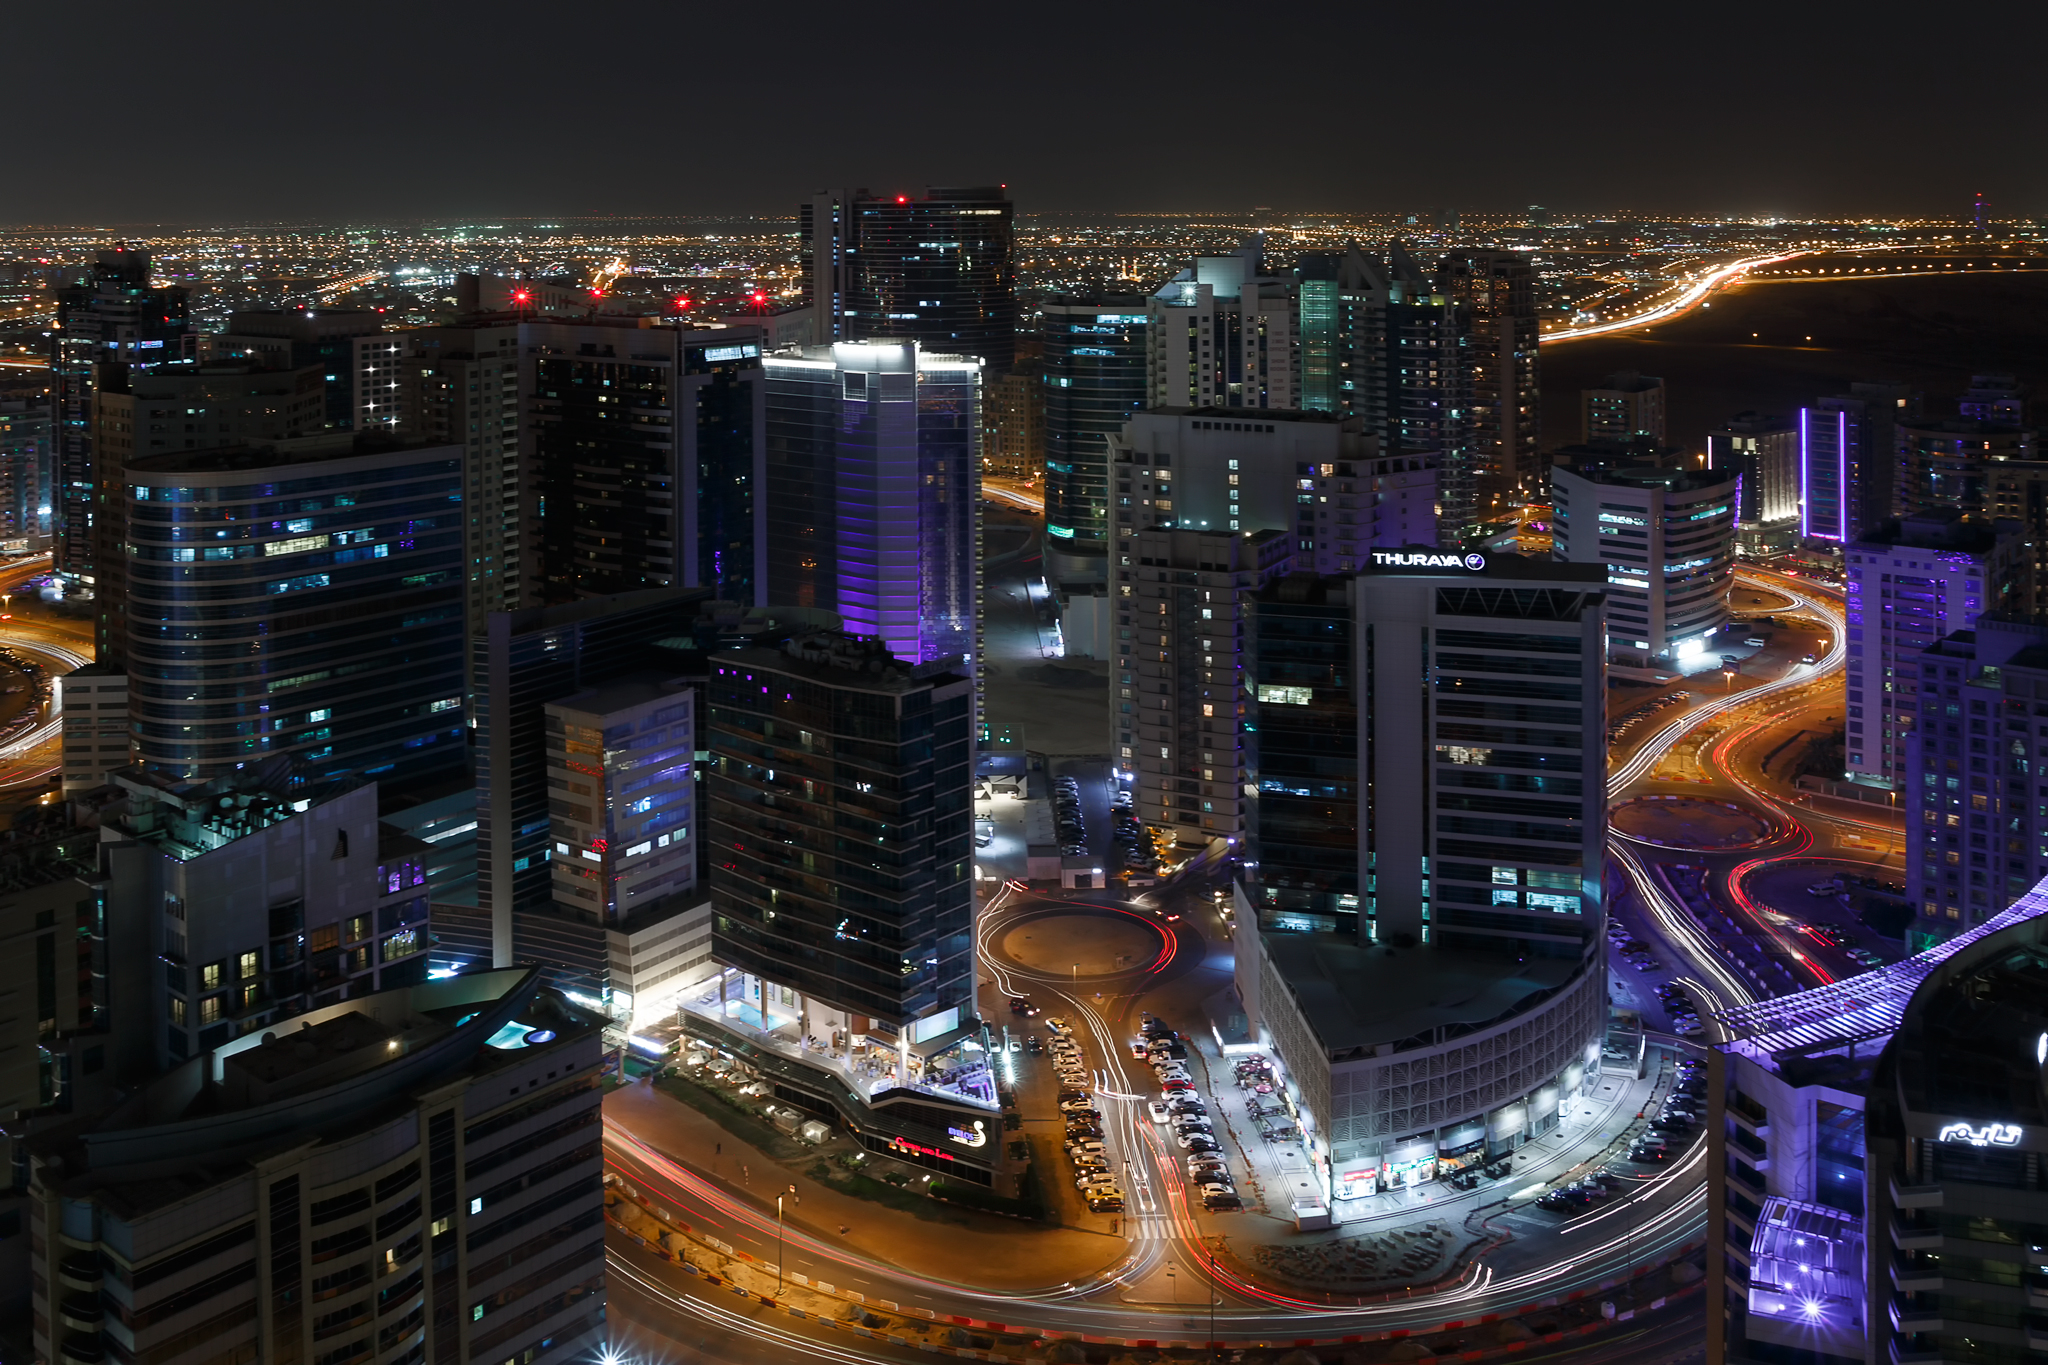 Another cool night shot of Dubai